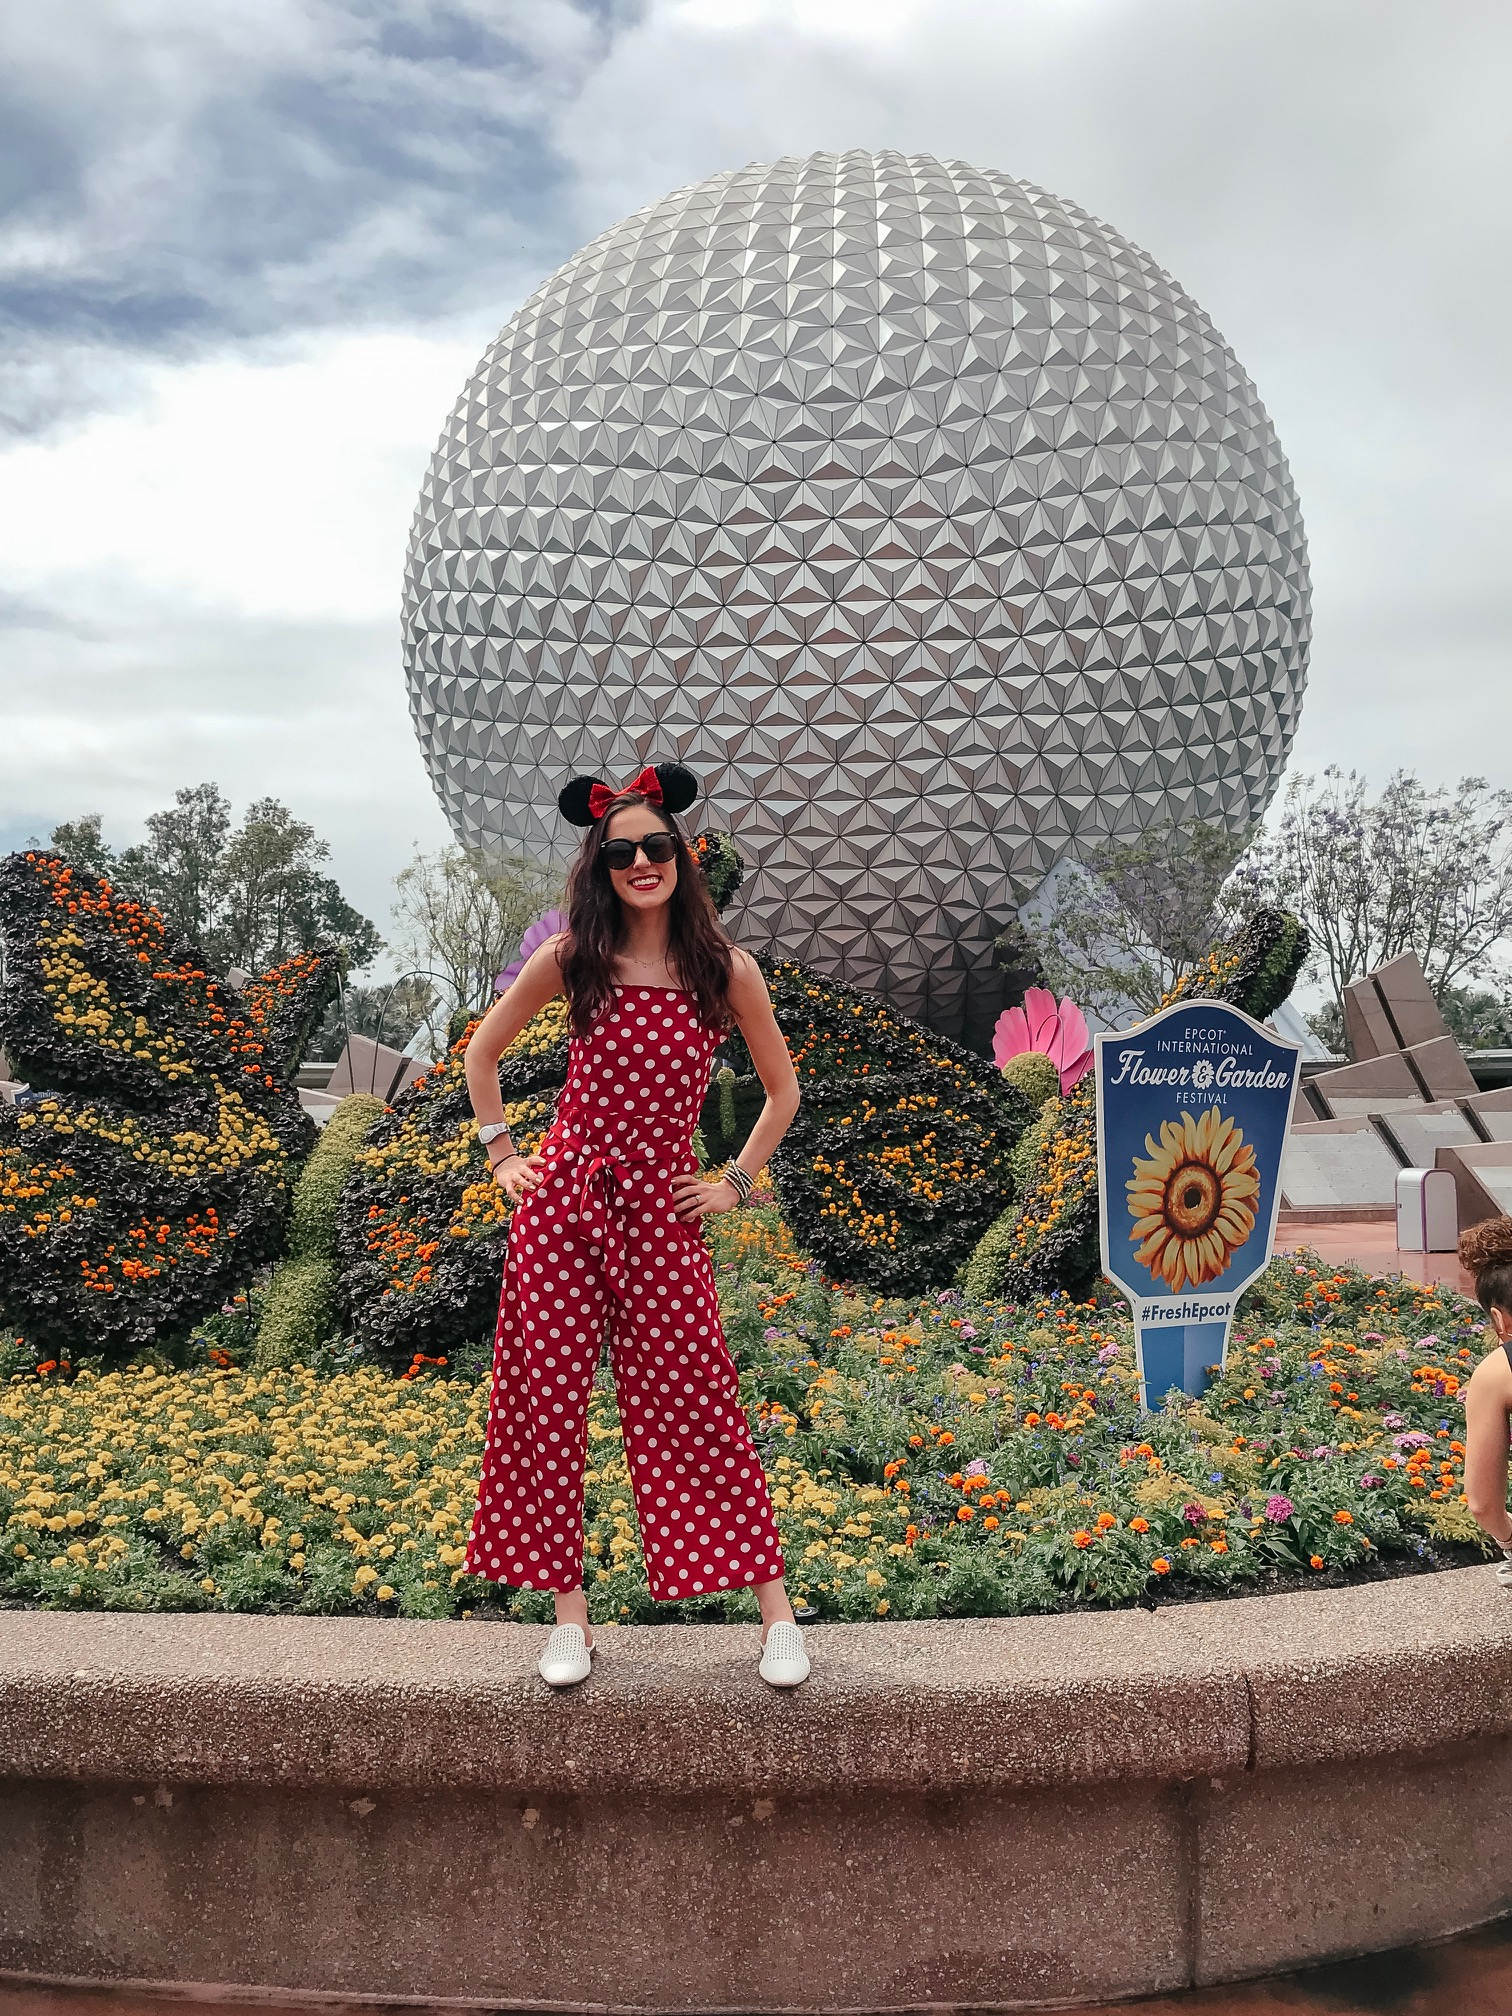 24 Hours in Walt Disney World